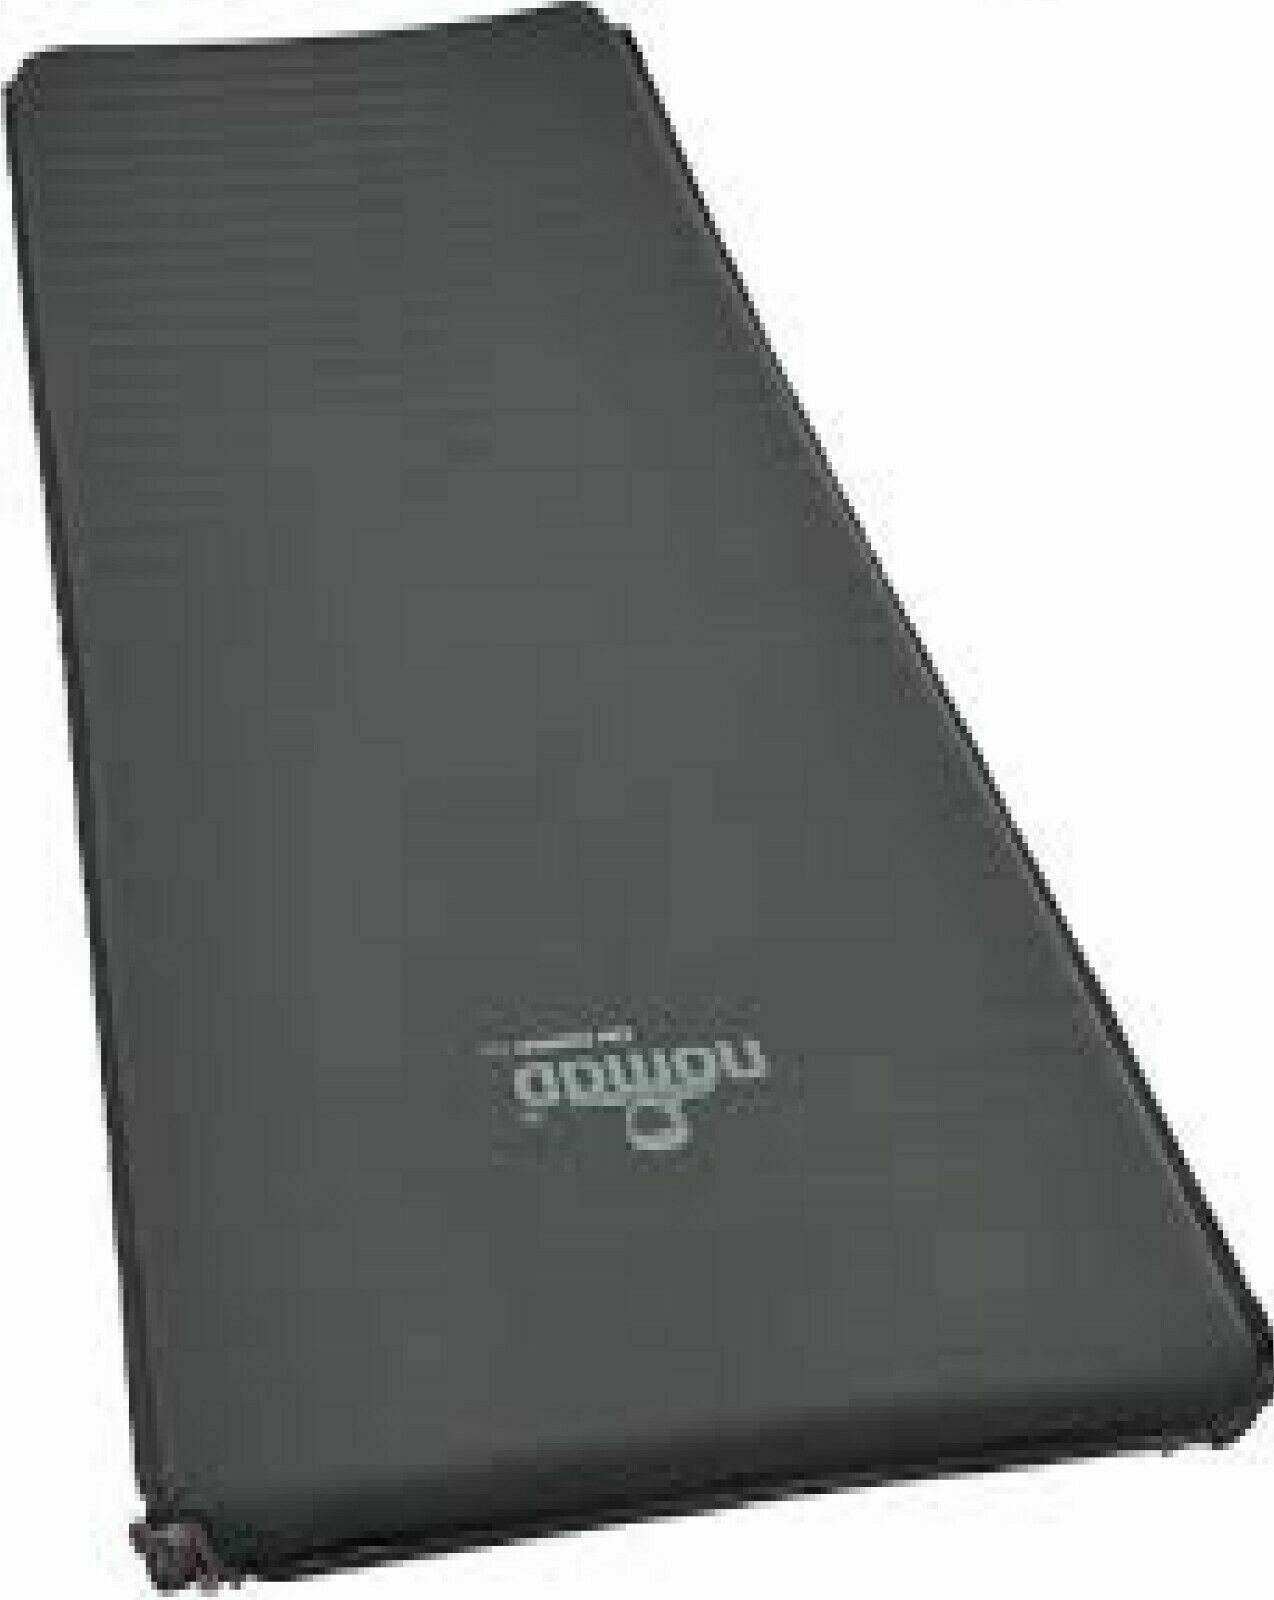 Nomad Lite  Comfort Sleeping Pad Self-Inflating 5,0 cm High Small Size NEW  cheapest price